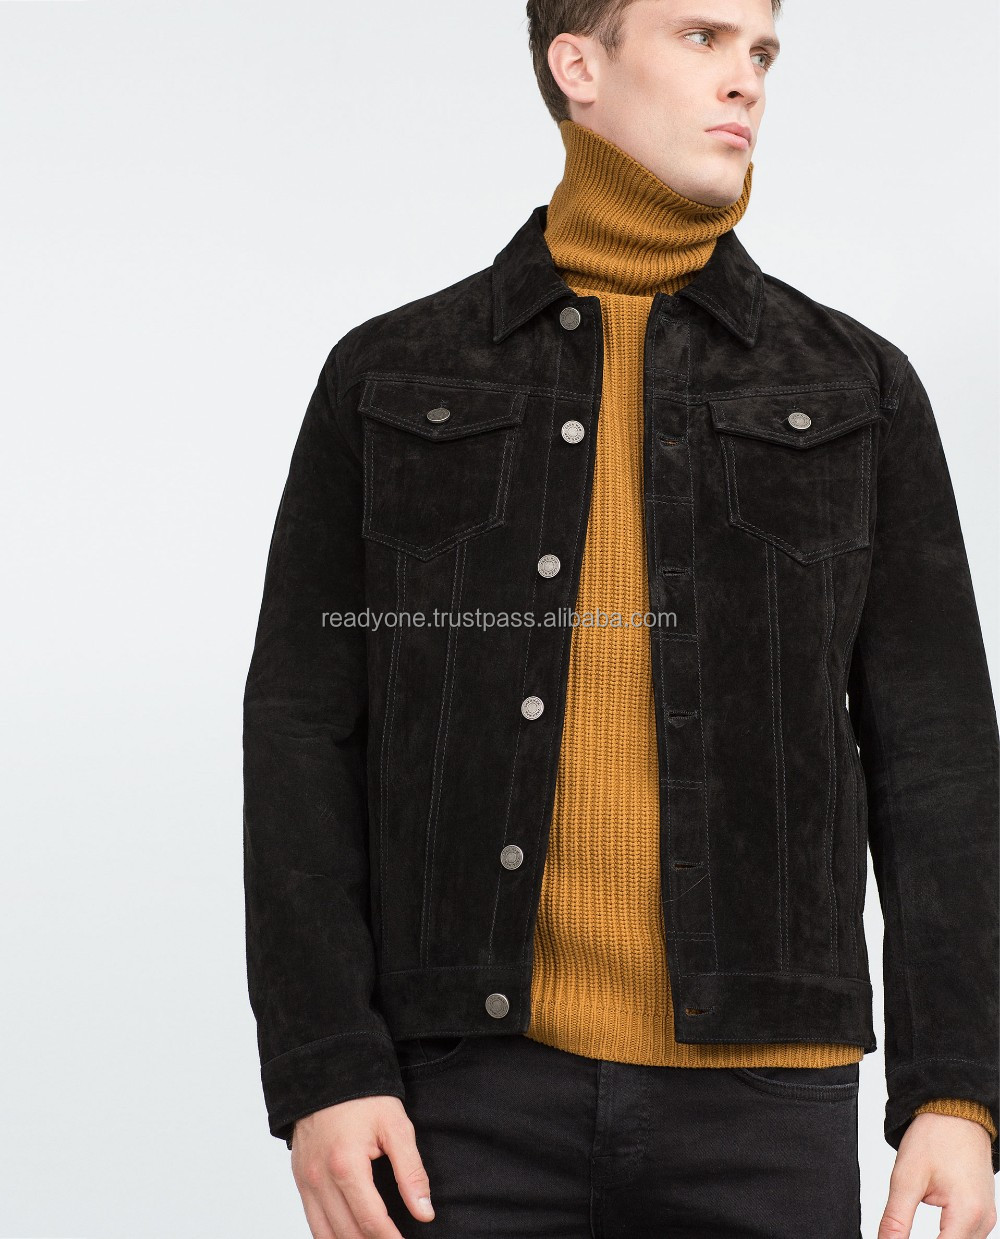 Suede Bomber Jackets Suede Varsity Jackets Bomber Jackets In Suede